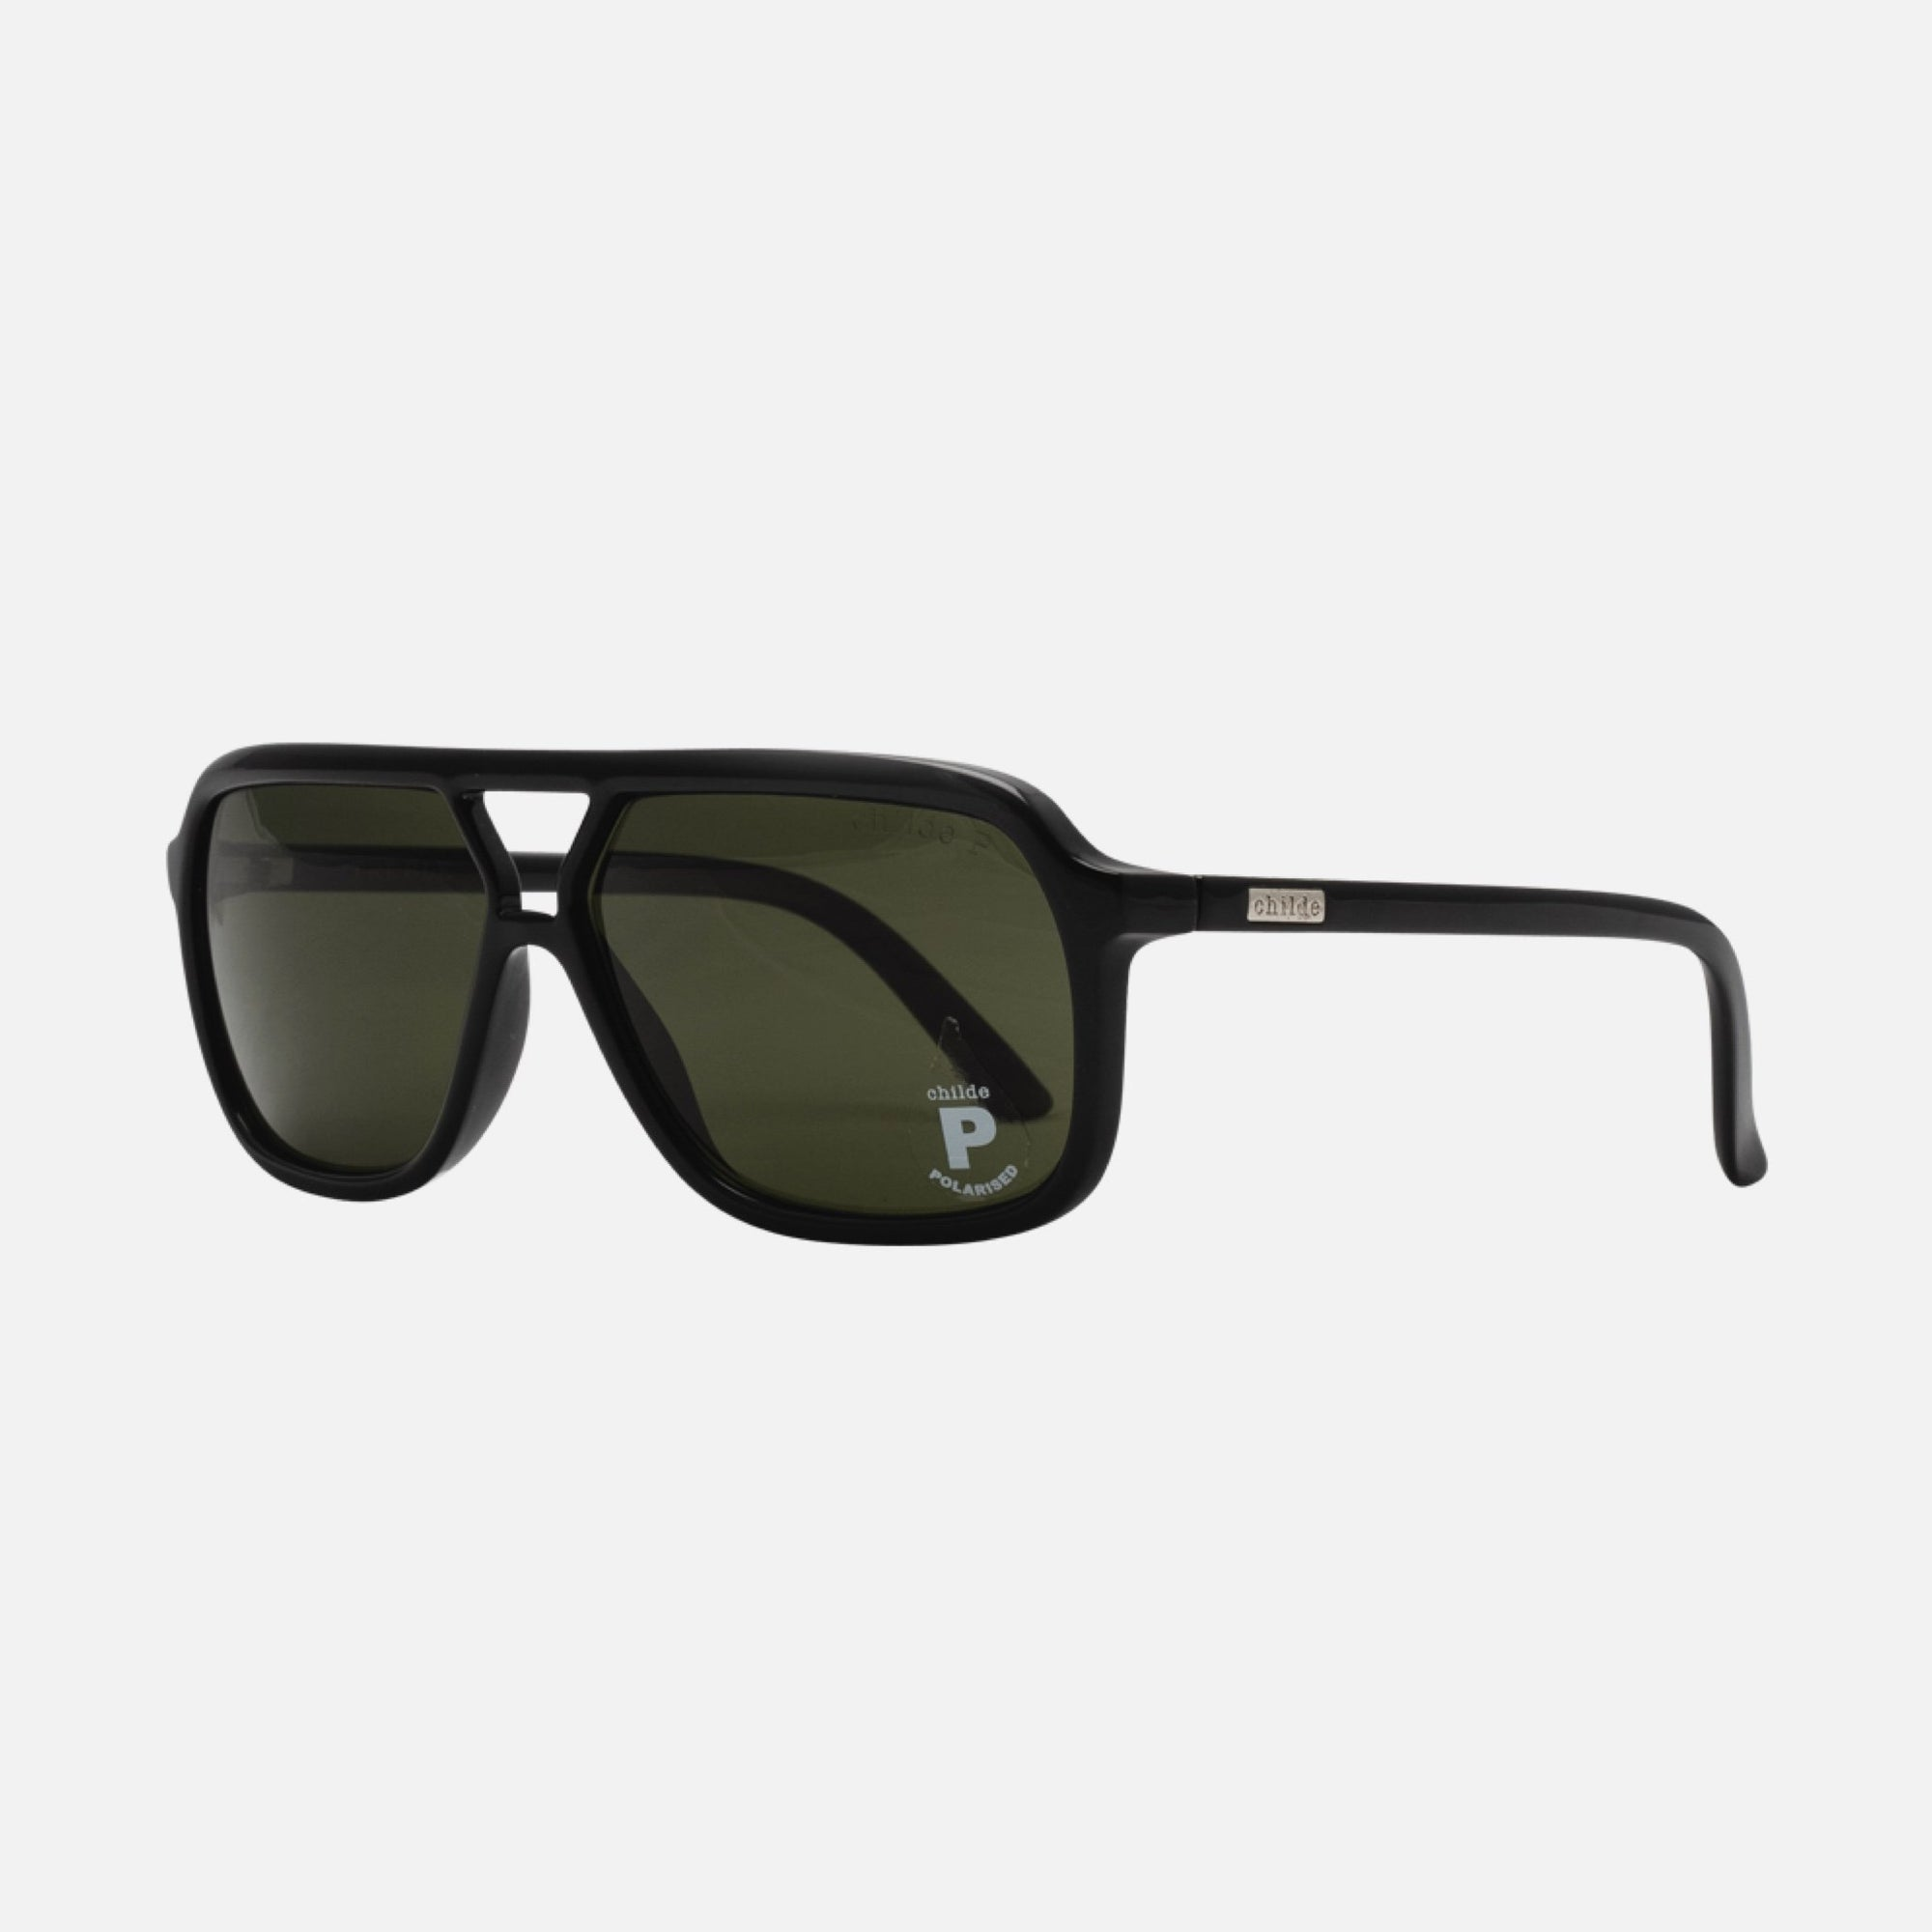 TREBLE Gloss Black | Green Polarised Lens